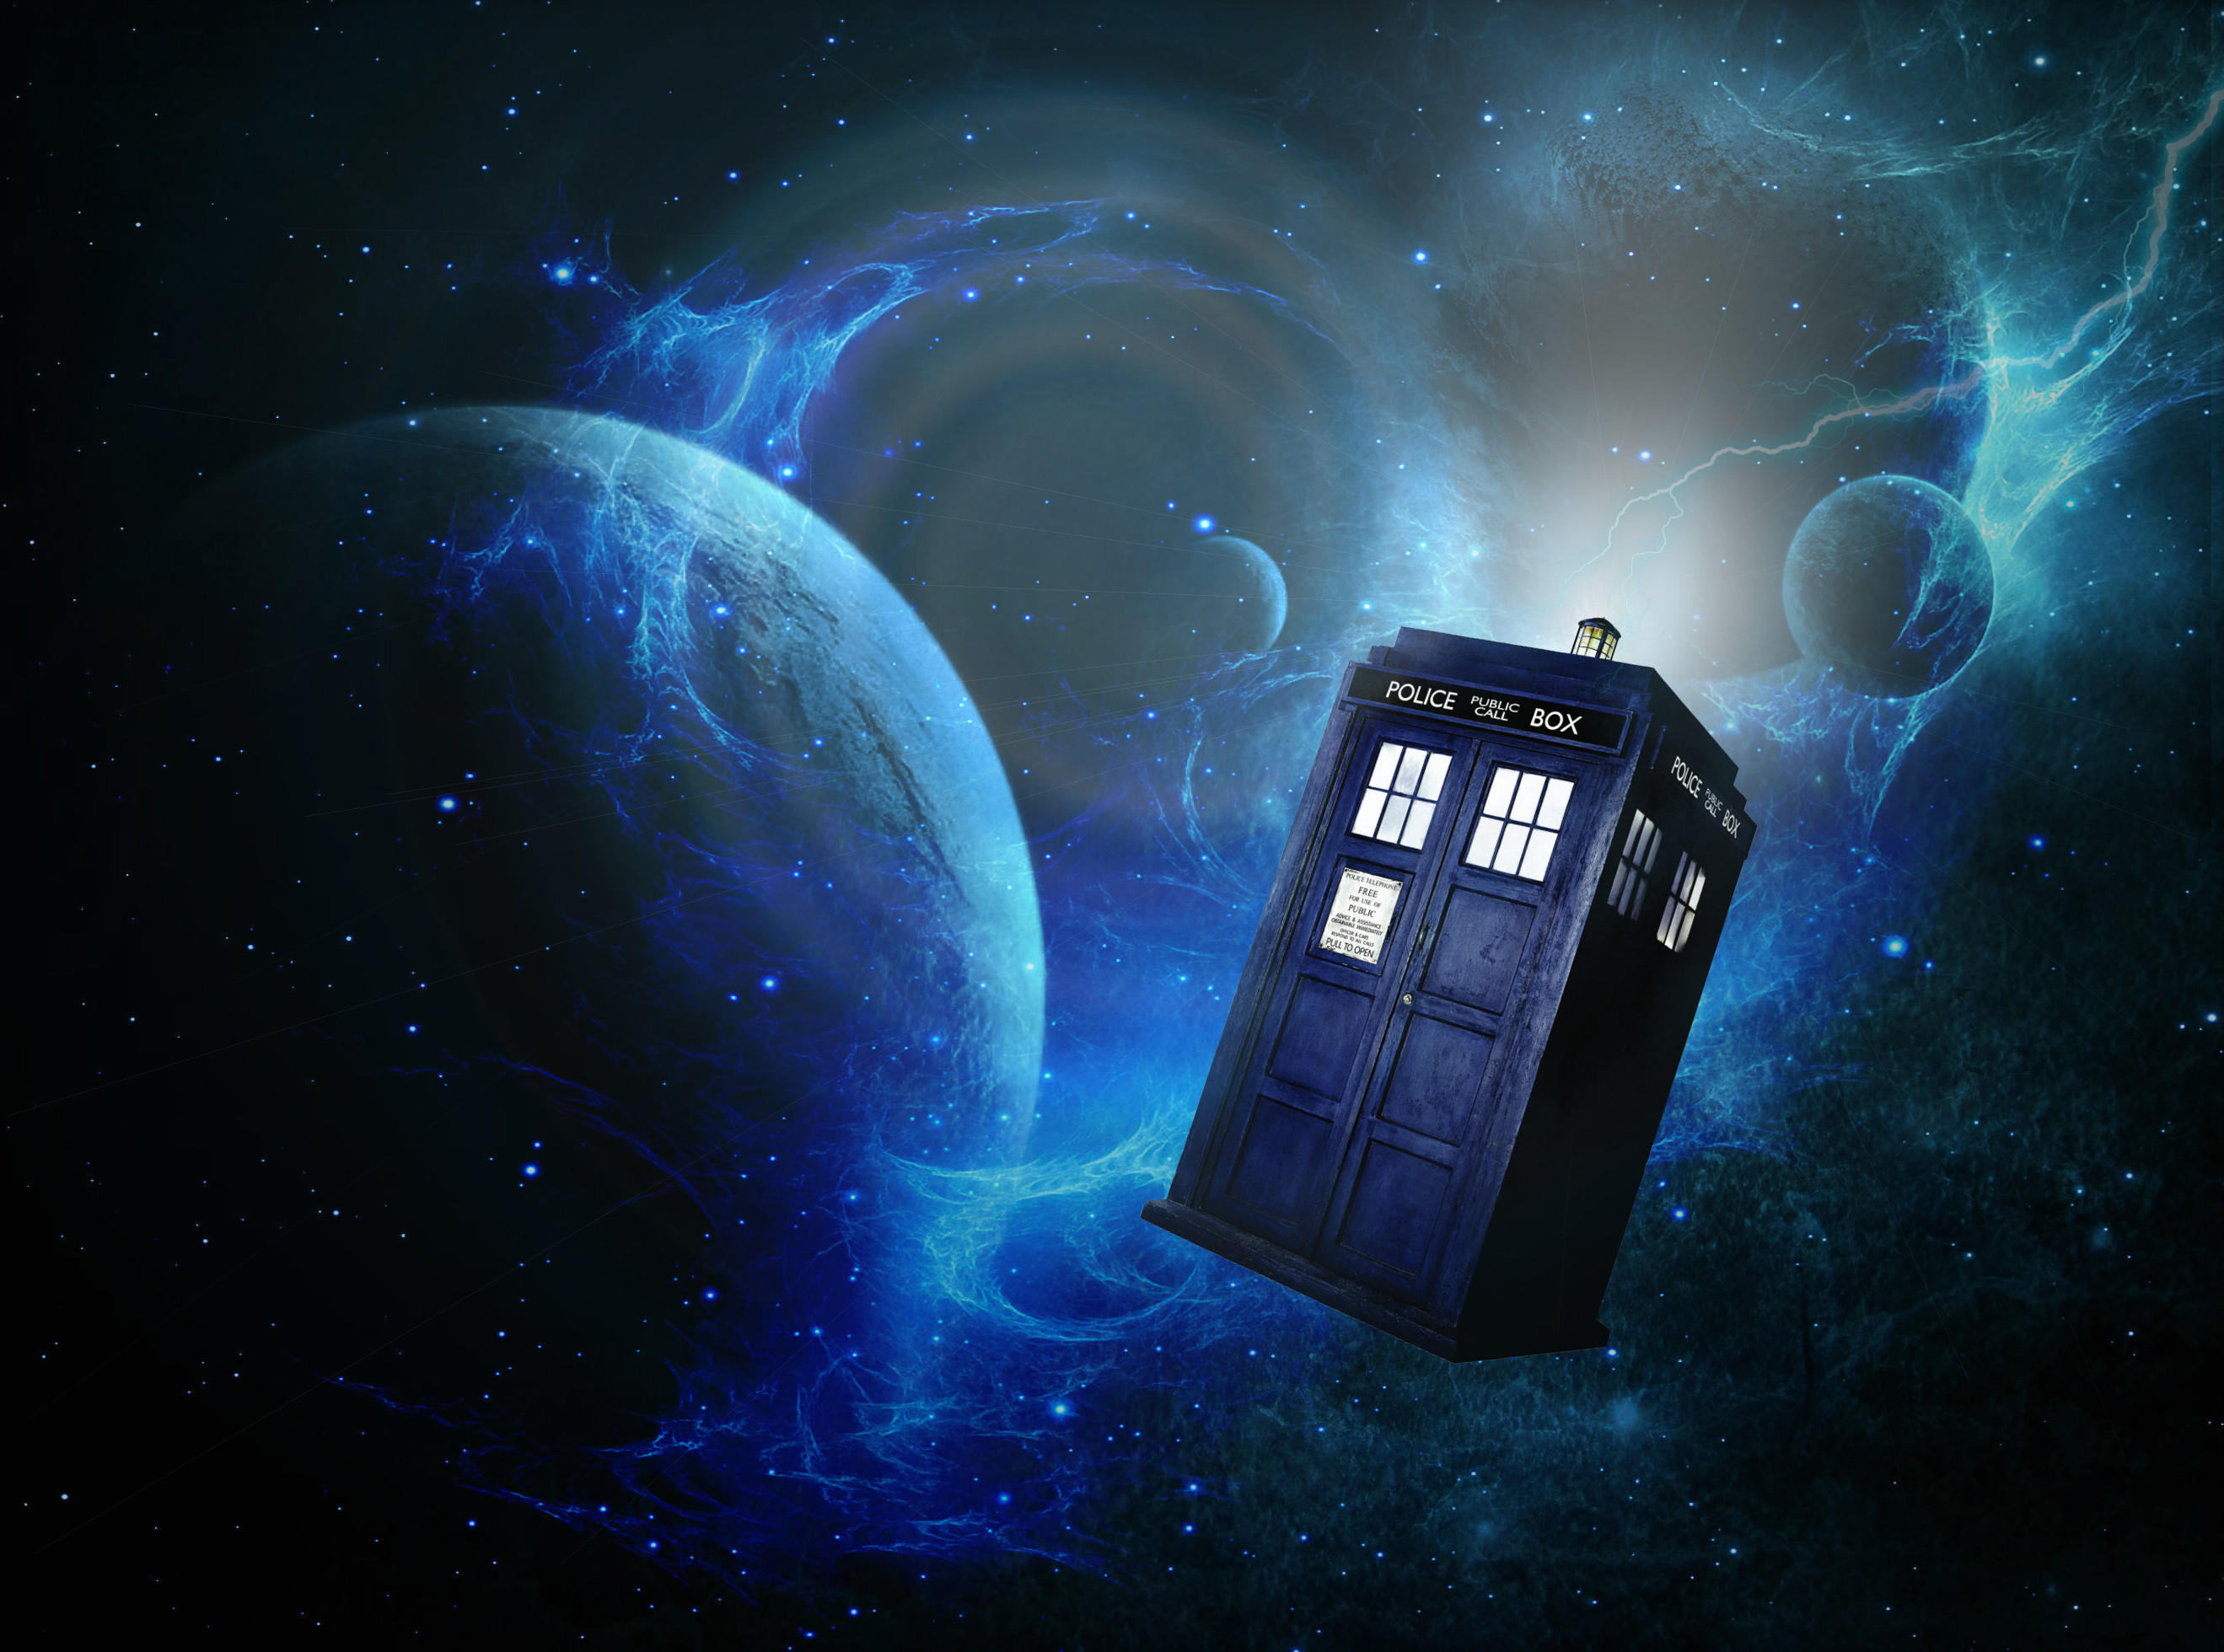 Doctor Who Wallpaper Tardis In Space 1